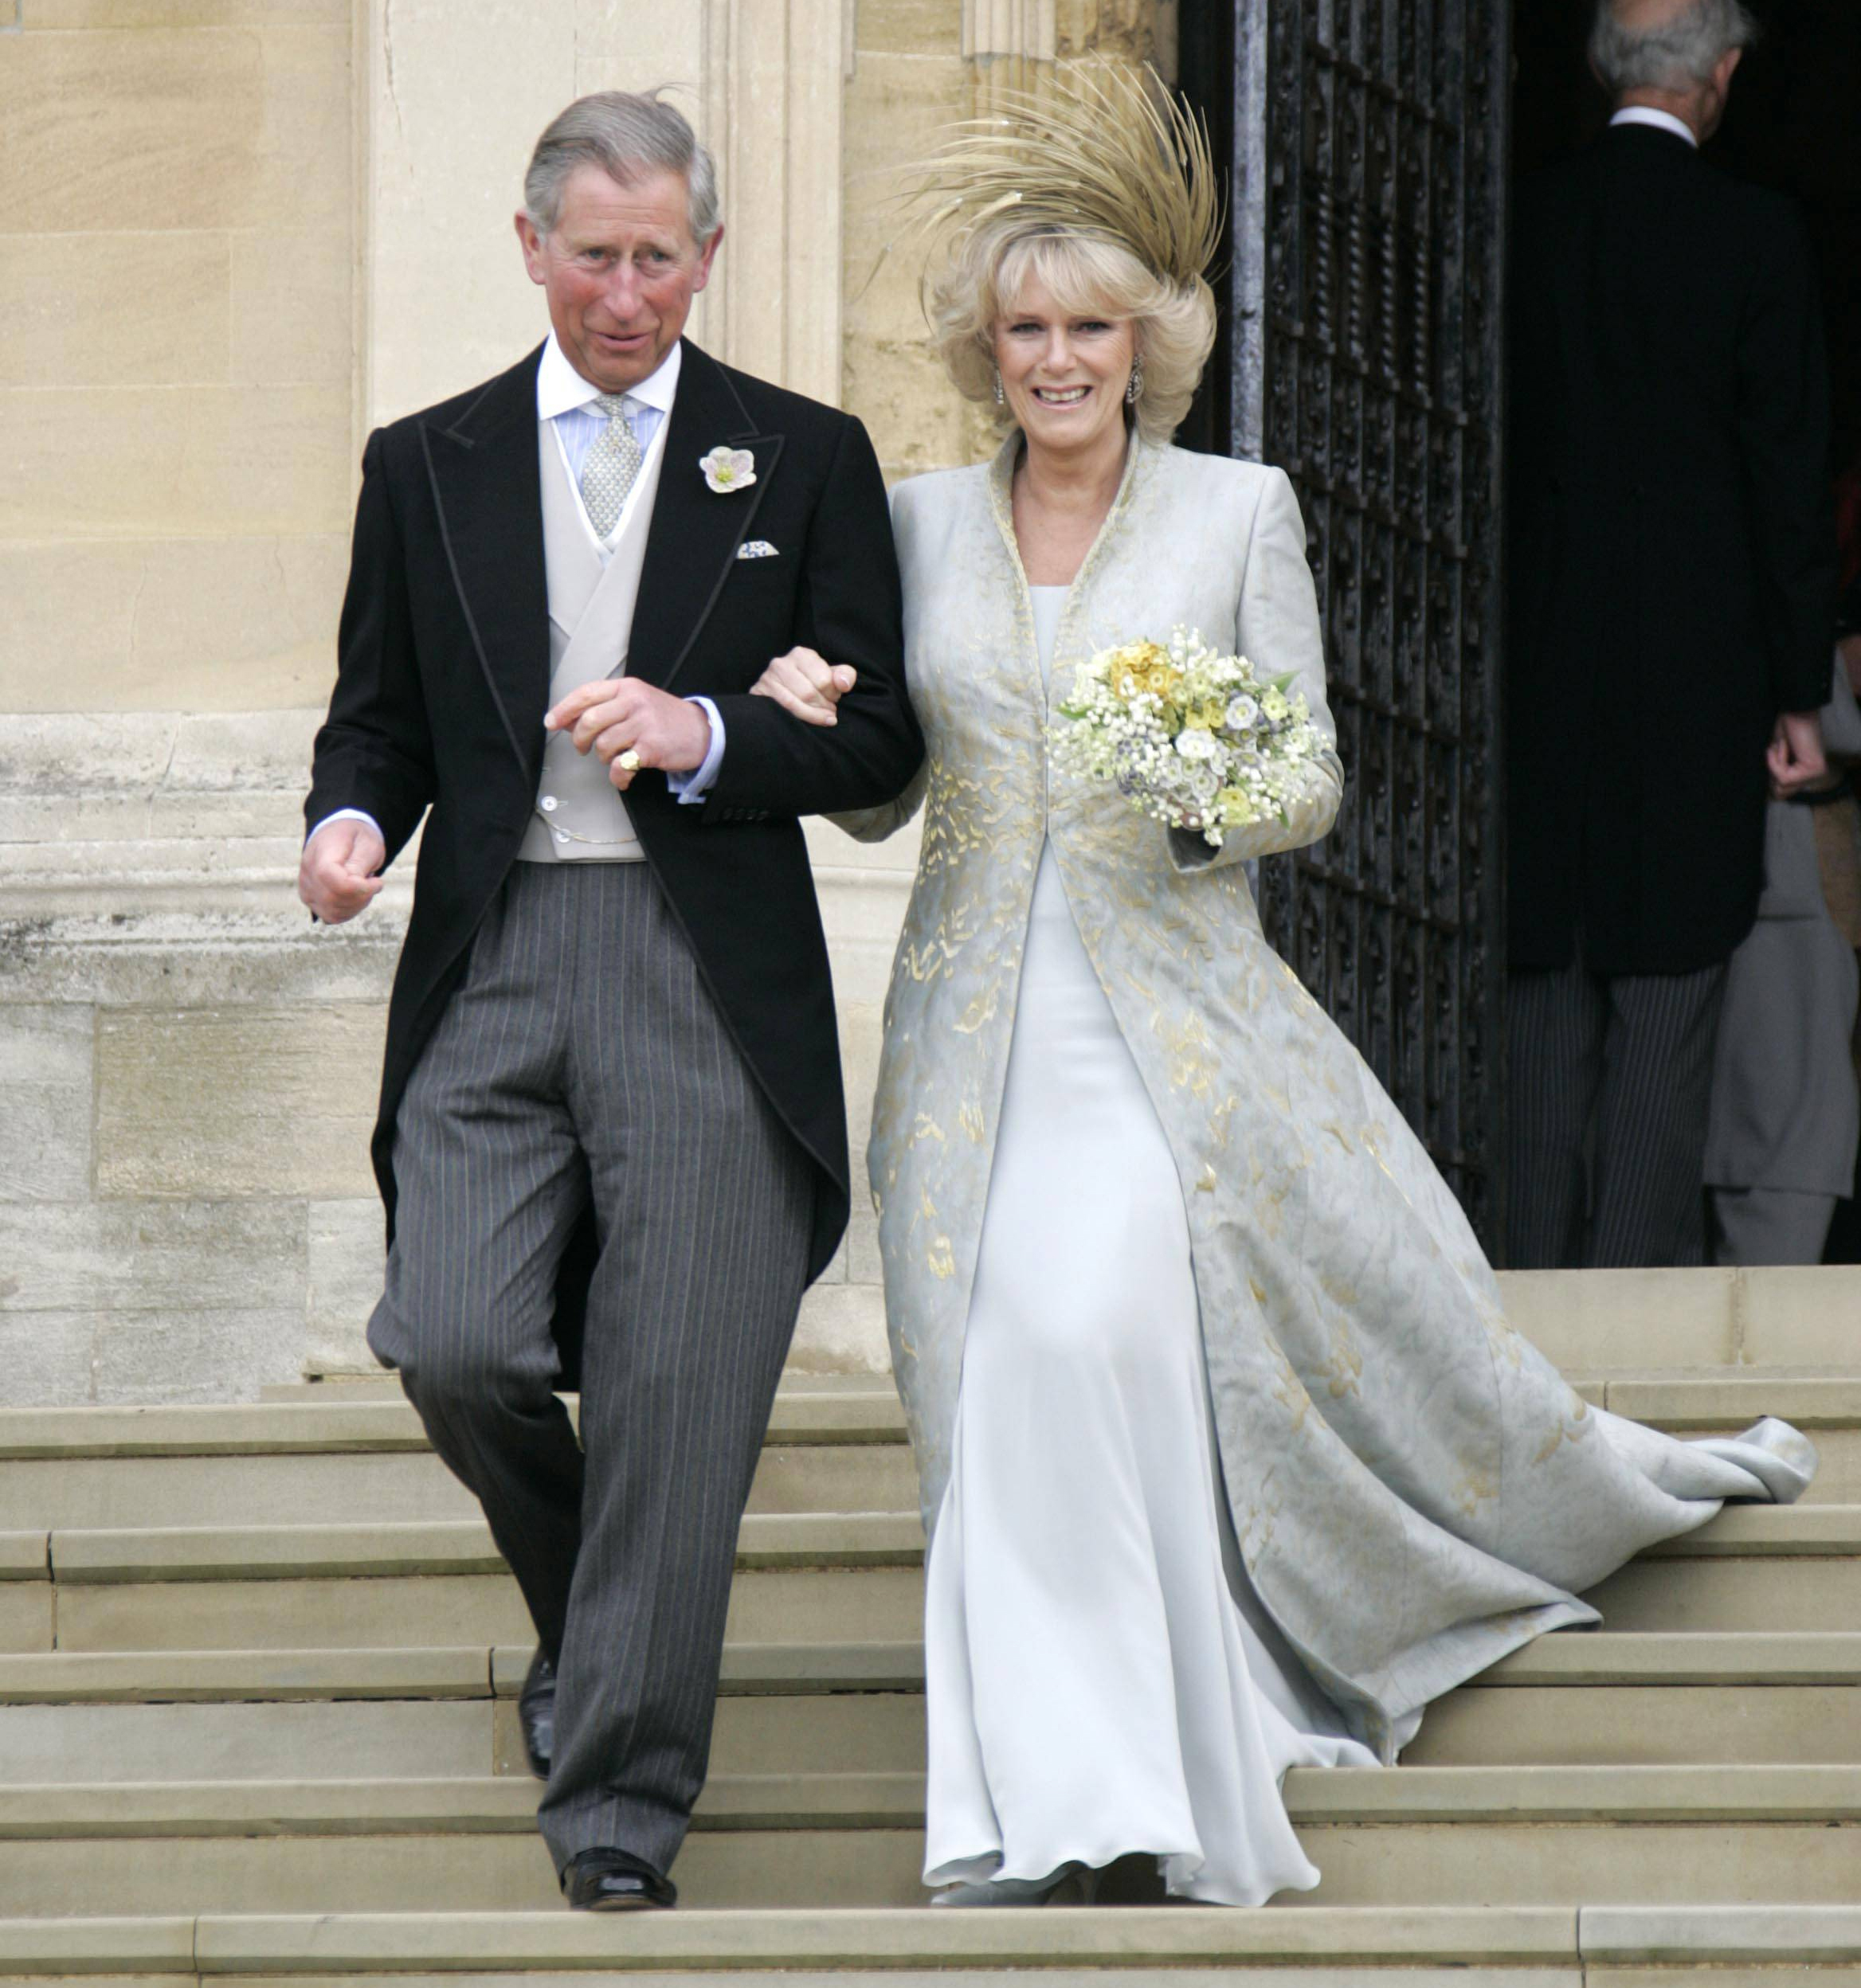 The Duchess of Cornwall's Wedding Dress